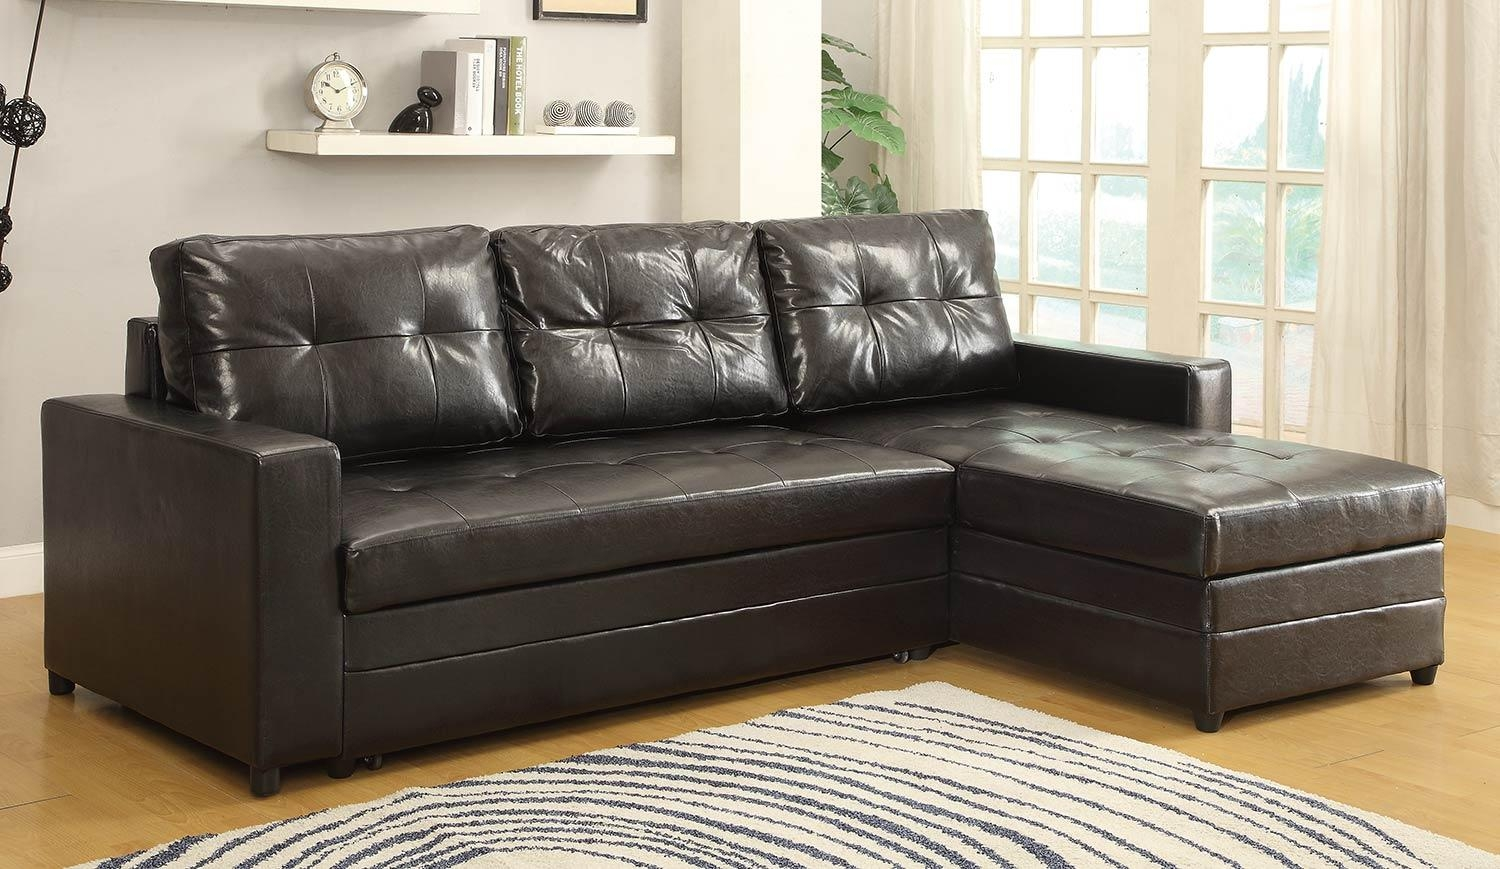 sofa lounger sleeper pattern for loose cover 20 best beds ideas